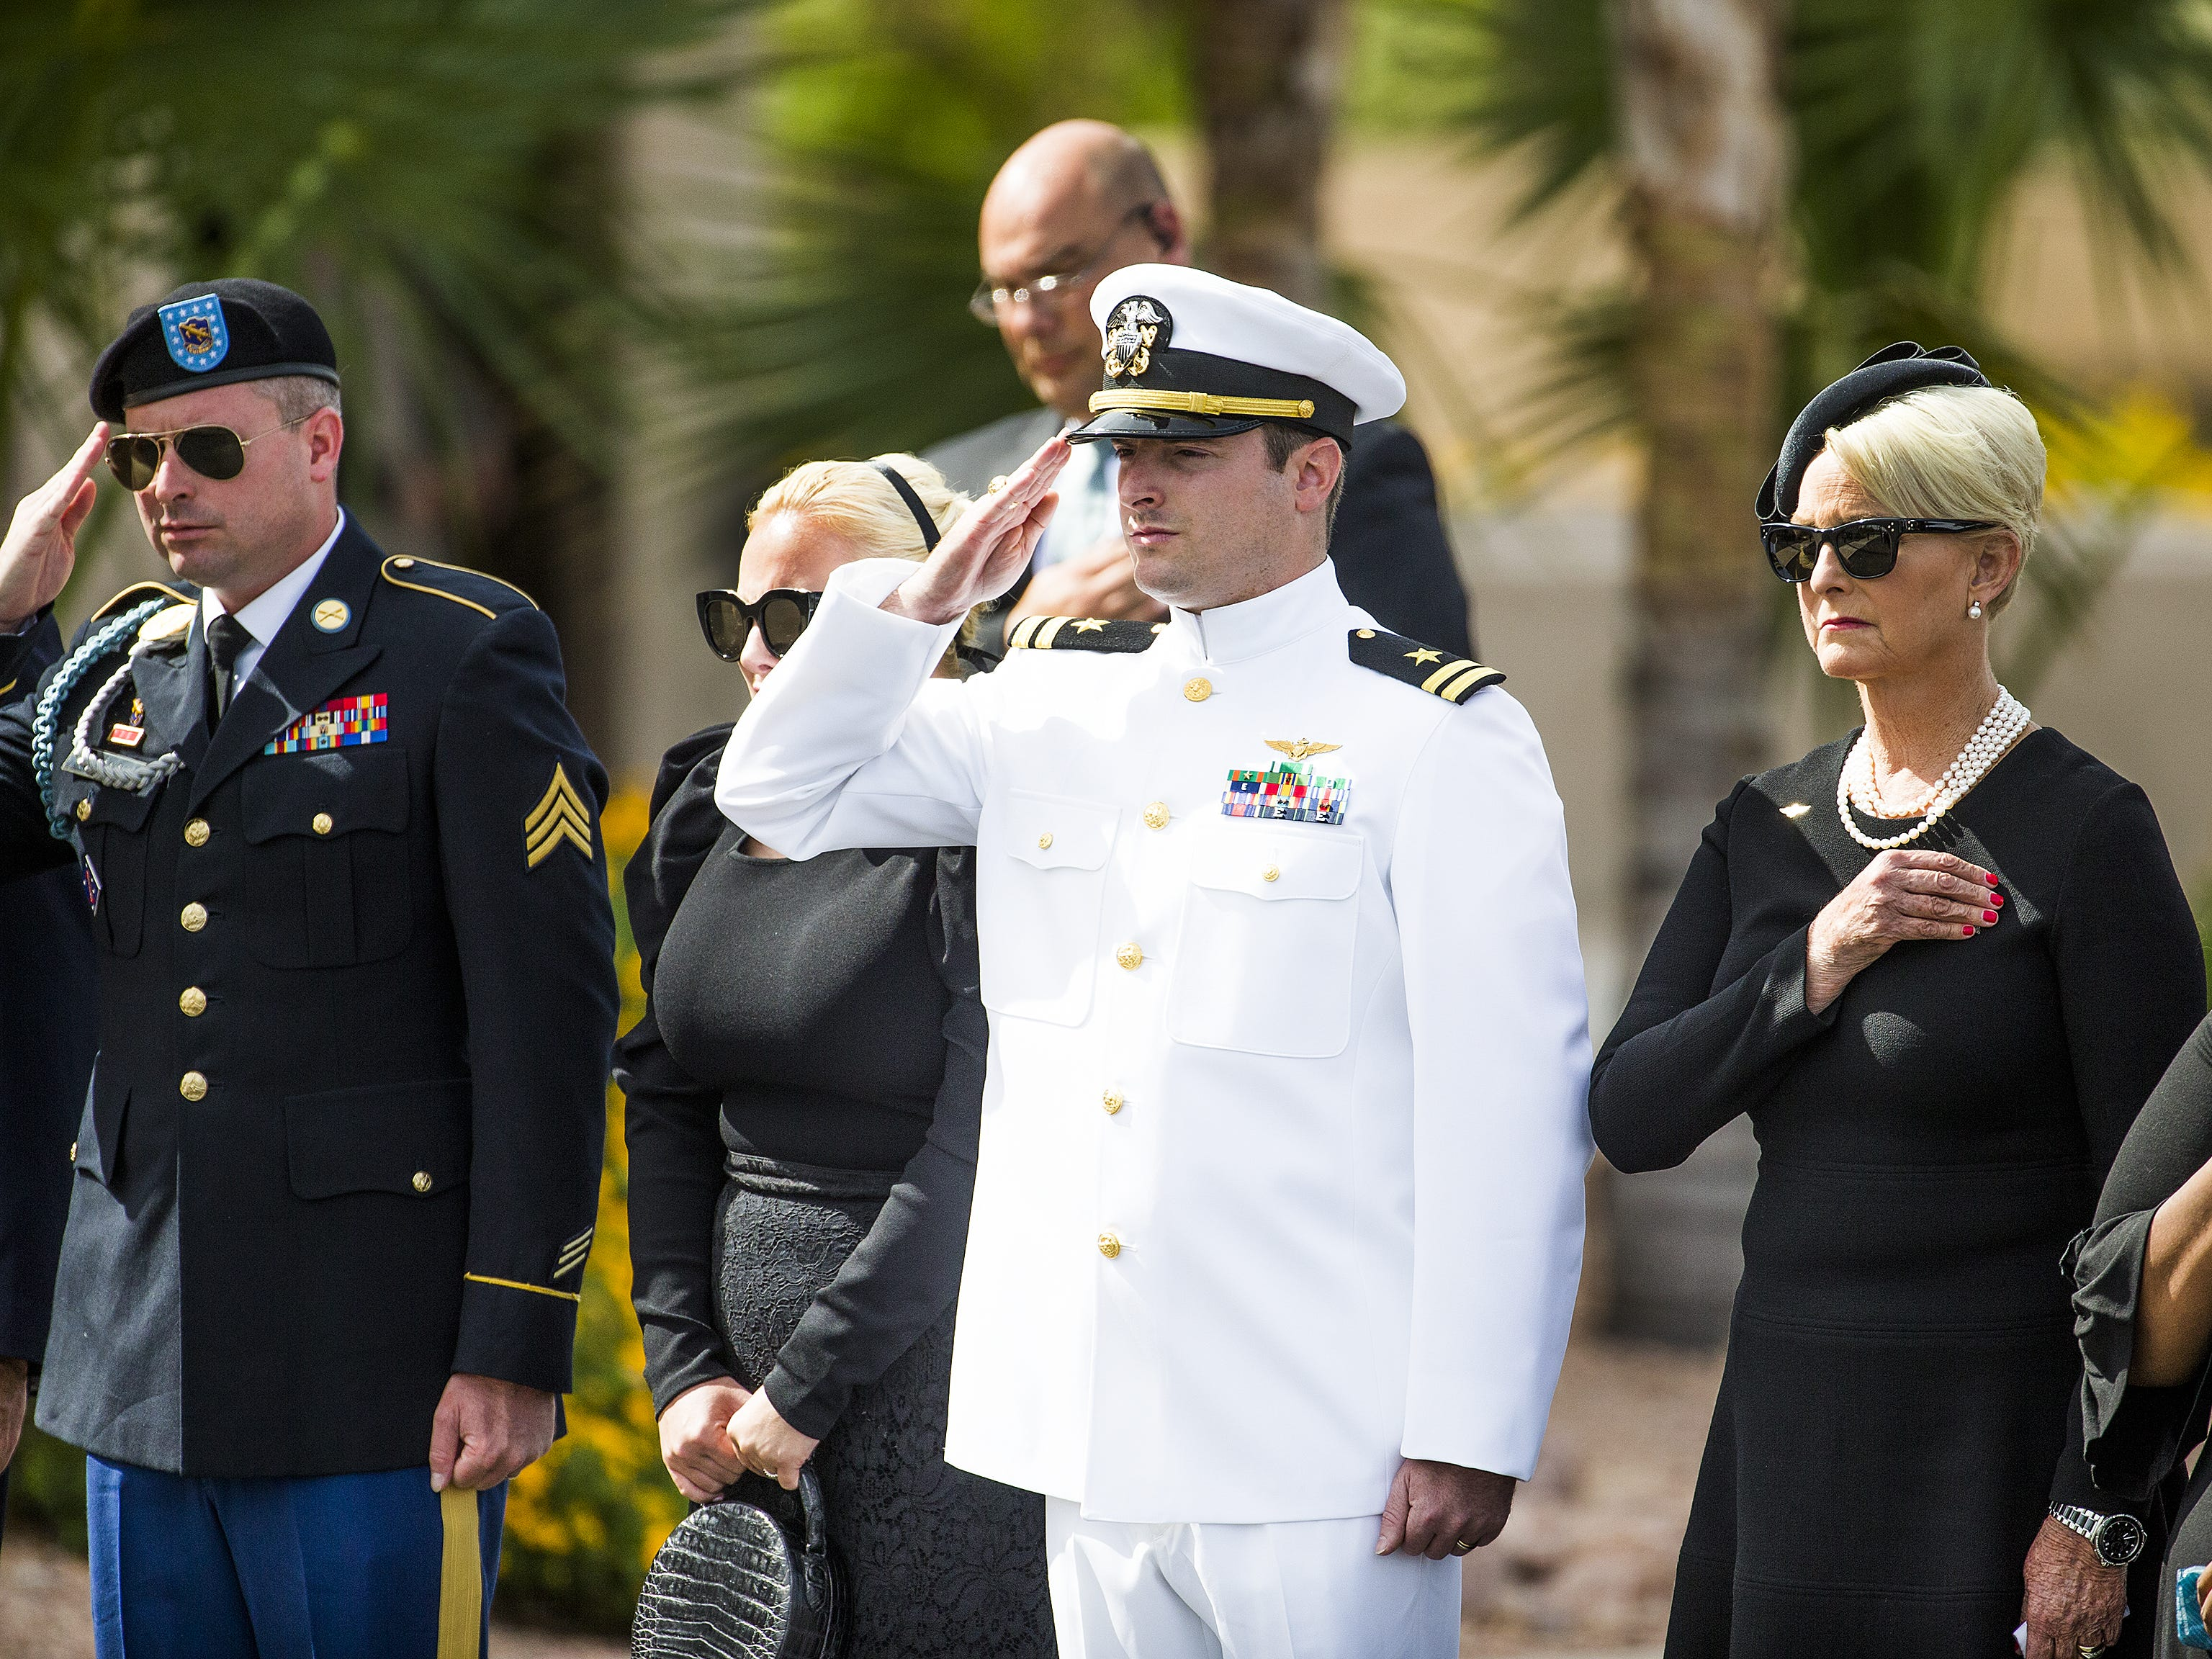 The McCain family, Jimmy, Meghan, Jack, Cindy and Bridget salute as the casket of Sen. John McCain is taken from the hearse at the North Phoenix Baptist Church in Phoenix, Aug. 30, 2018.